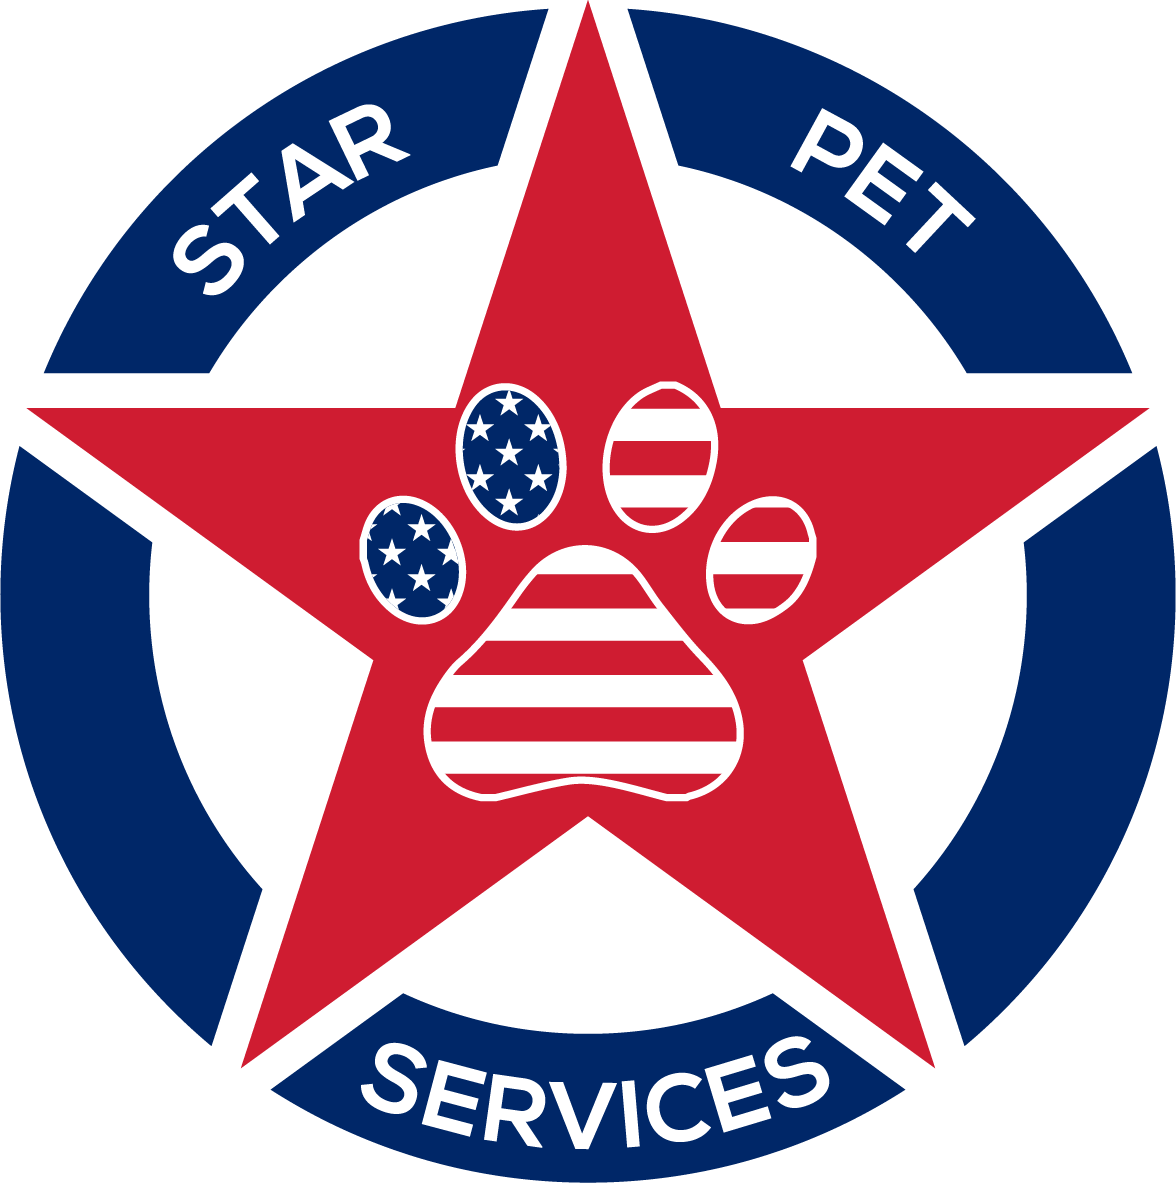 StarPetServices